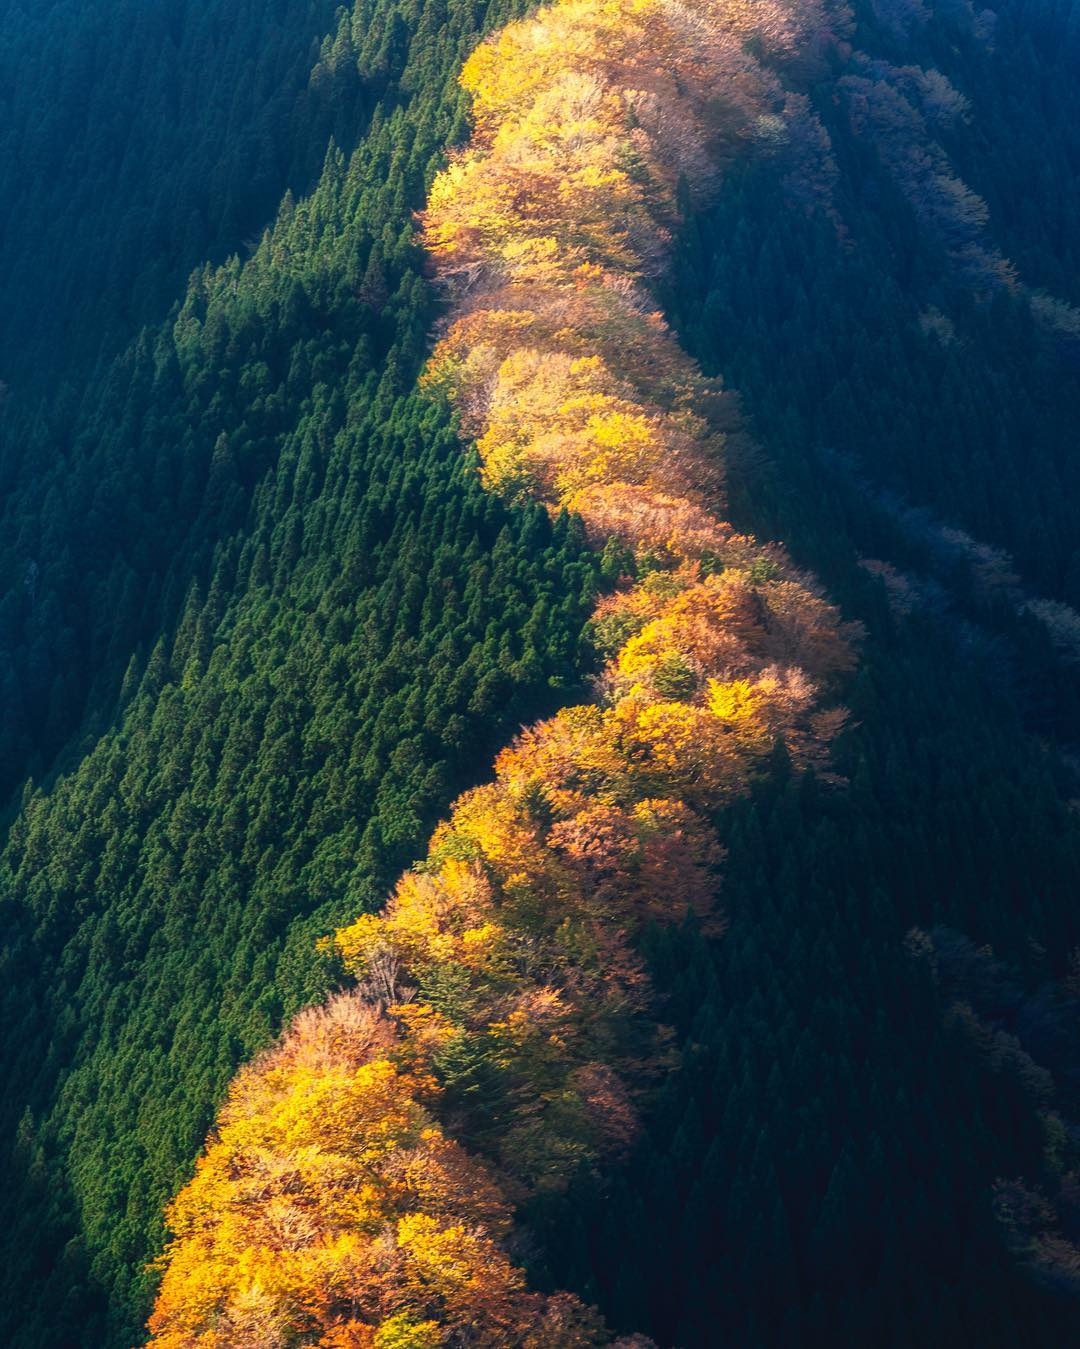 Colorful Autumn In Japan: Landscape Photography By Daisuke